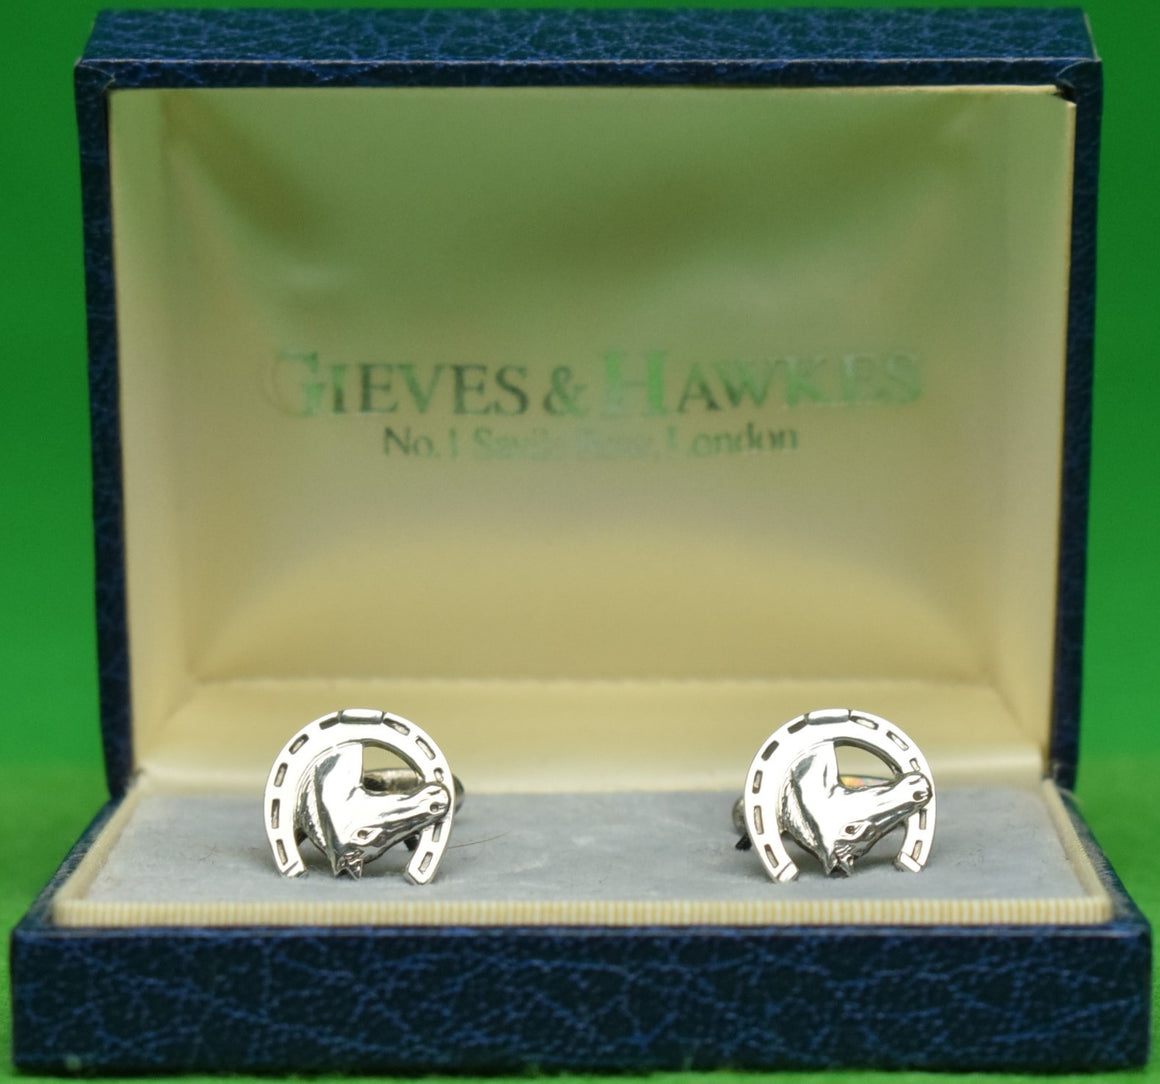 Gieves & Hawkes Sterling Horseshoe T-Back Cufflinks in G&H Box